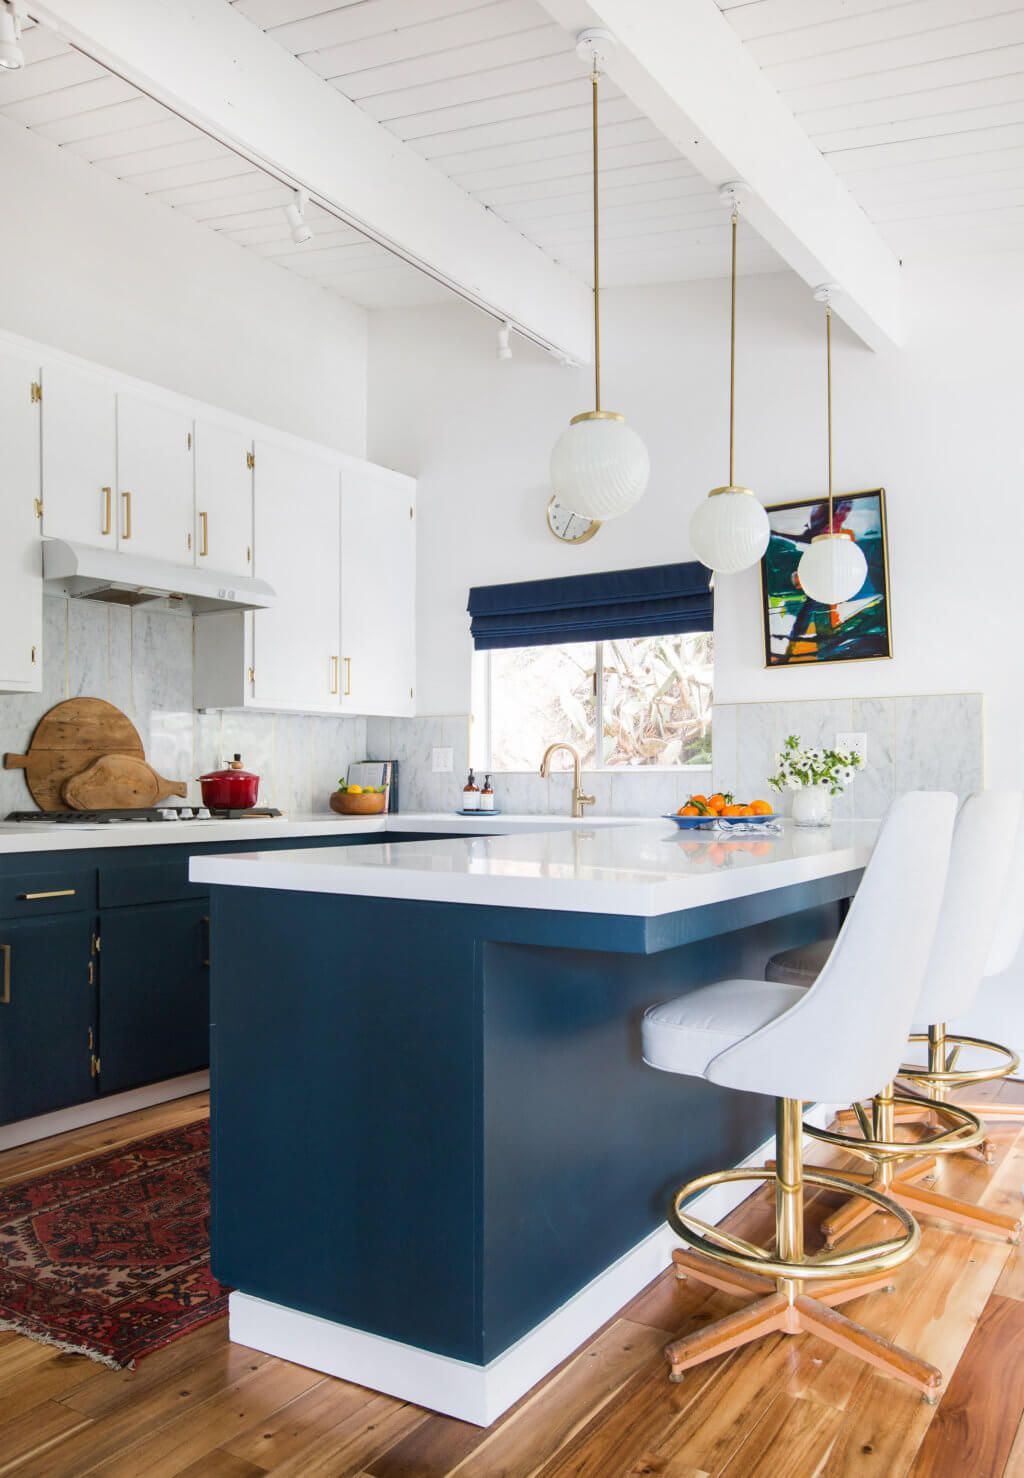 Our First Home A Look Back And Full House Tour Emily Henderson Kitchen Decor Modern Interior Design Kitchen Kitchen Backsplash Designs